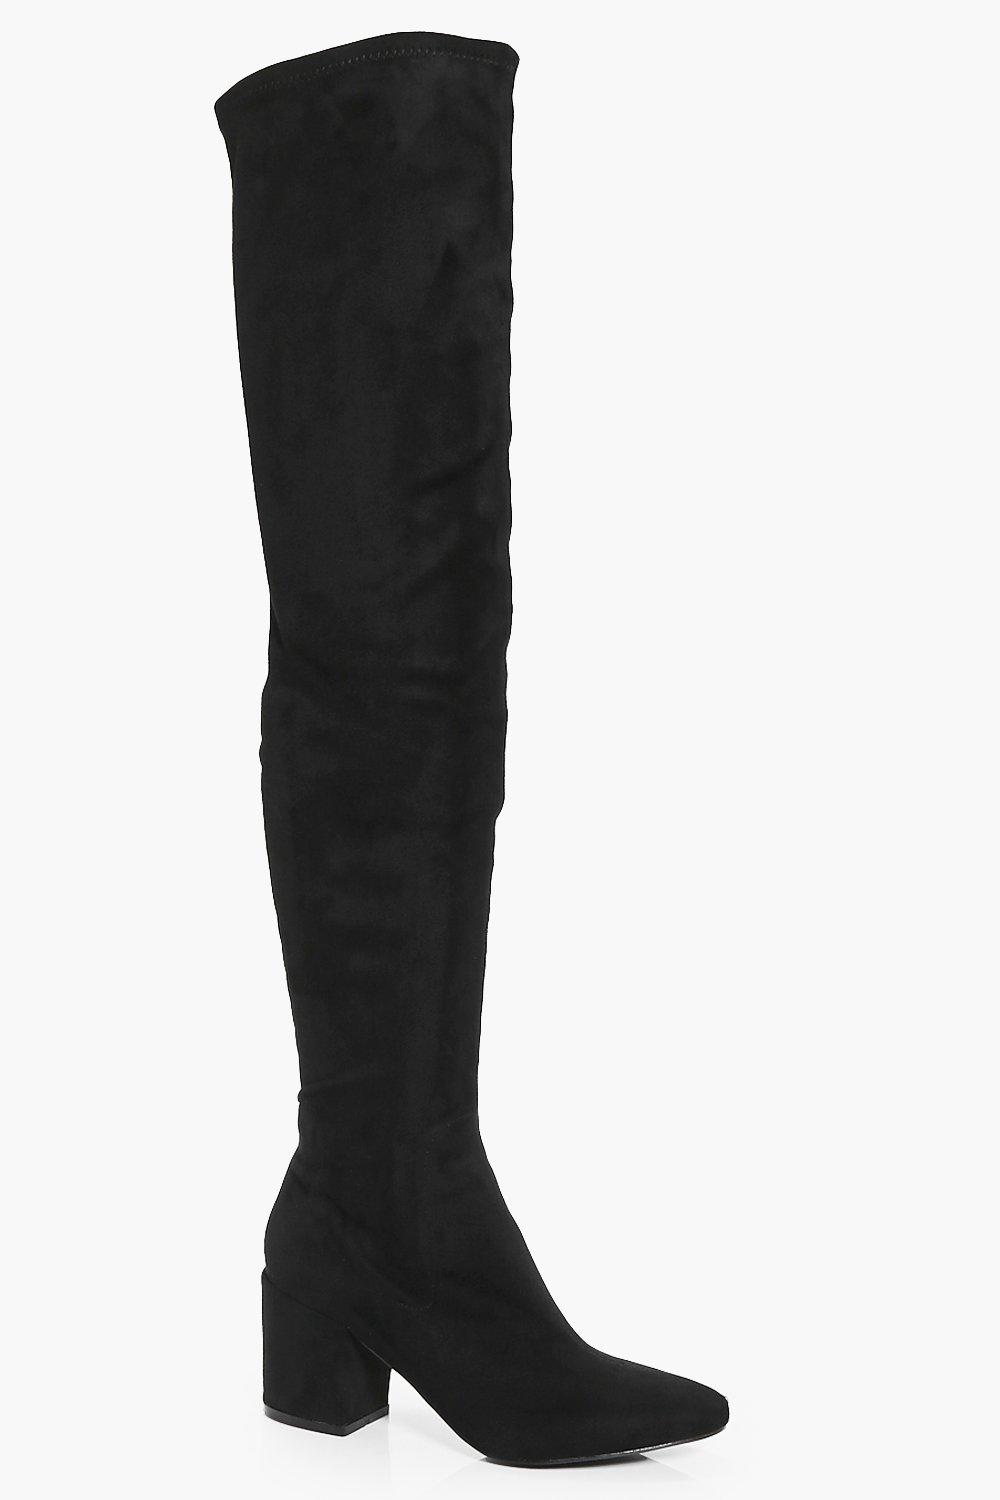 Boots | Shop all Women's Boots at boohoo.com